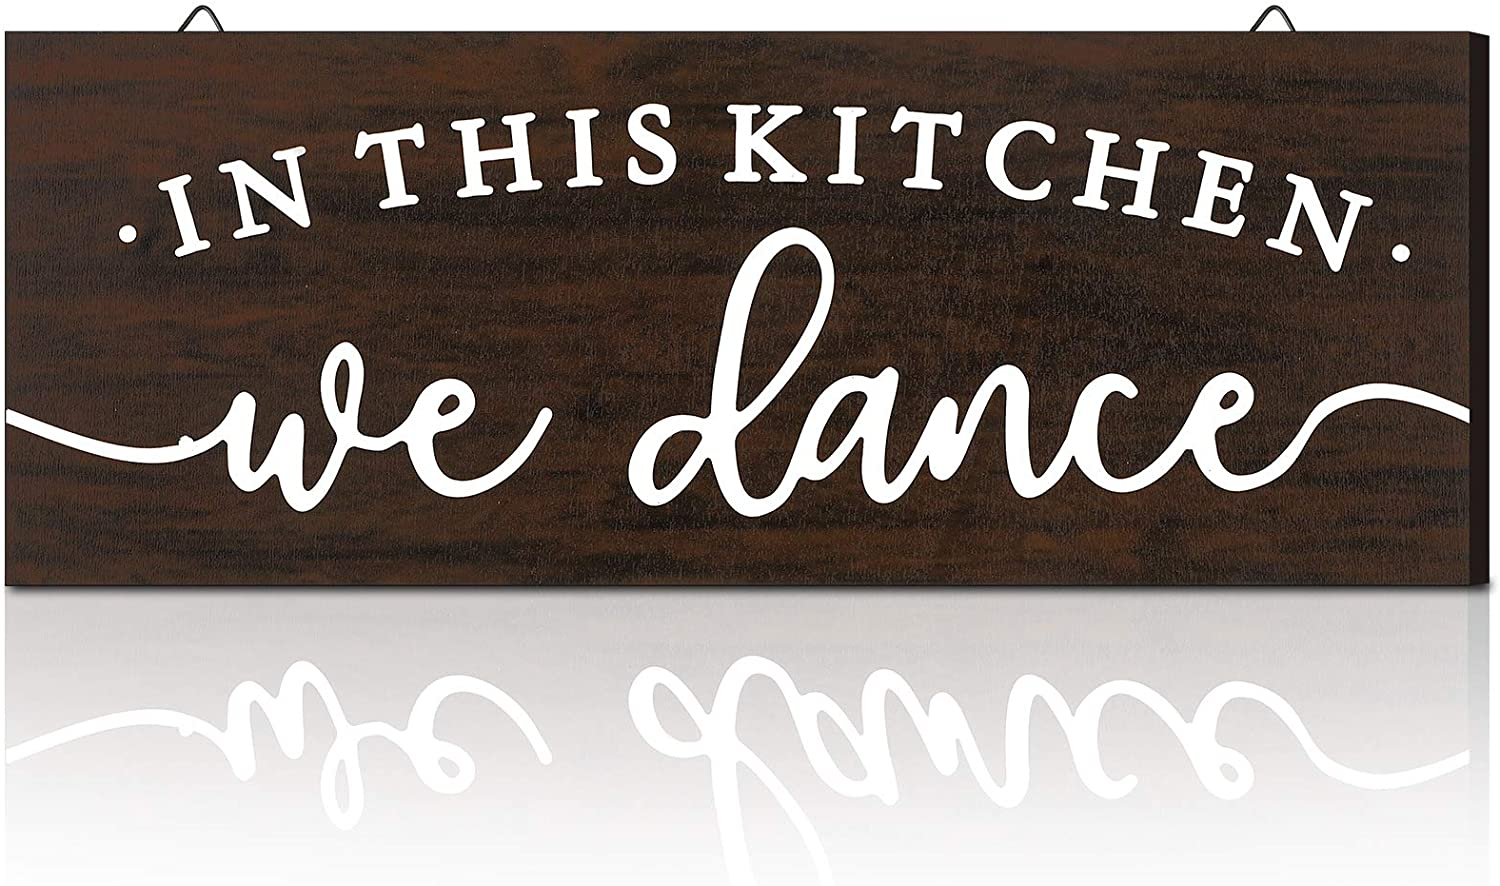 Jetec Rustic Wooden in This Kitchen We Dance Sign Farmhouse Rustic Wall Art Kitchen Sign Home Decor for Kitchen Dining Living Room Bar Restaurant Decoration (Dark Brown)